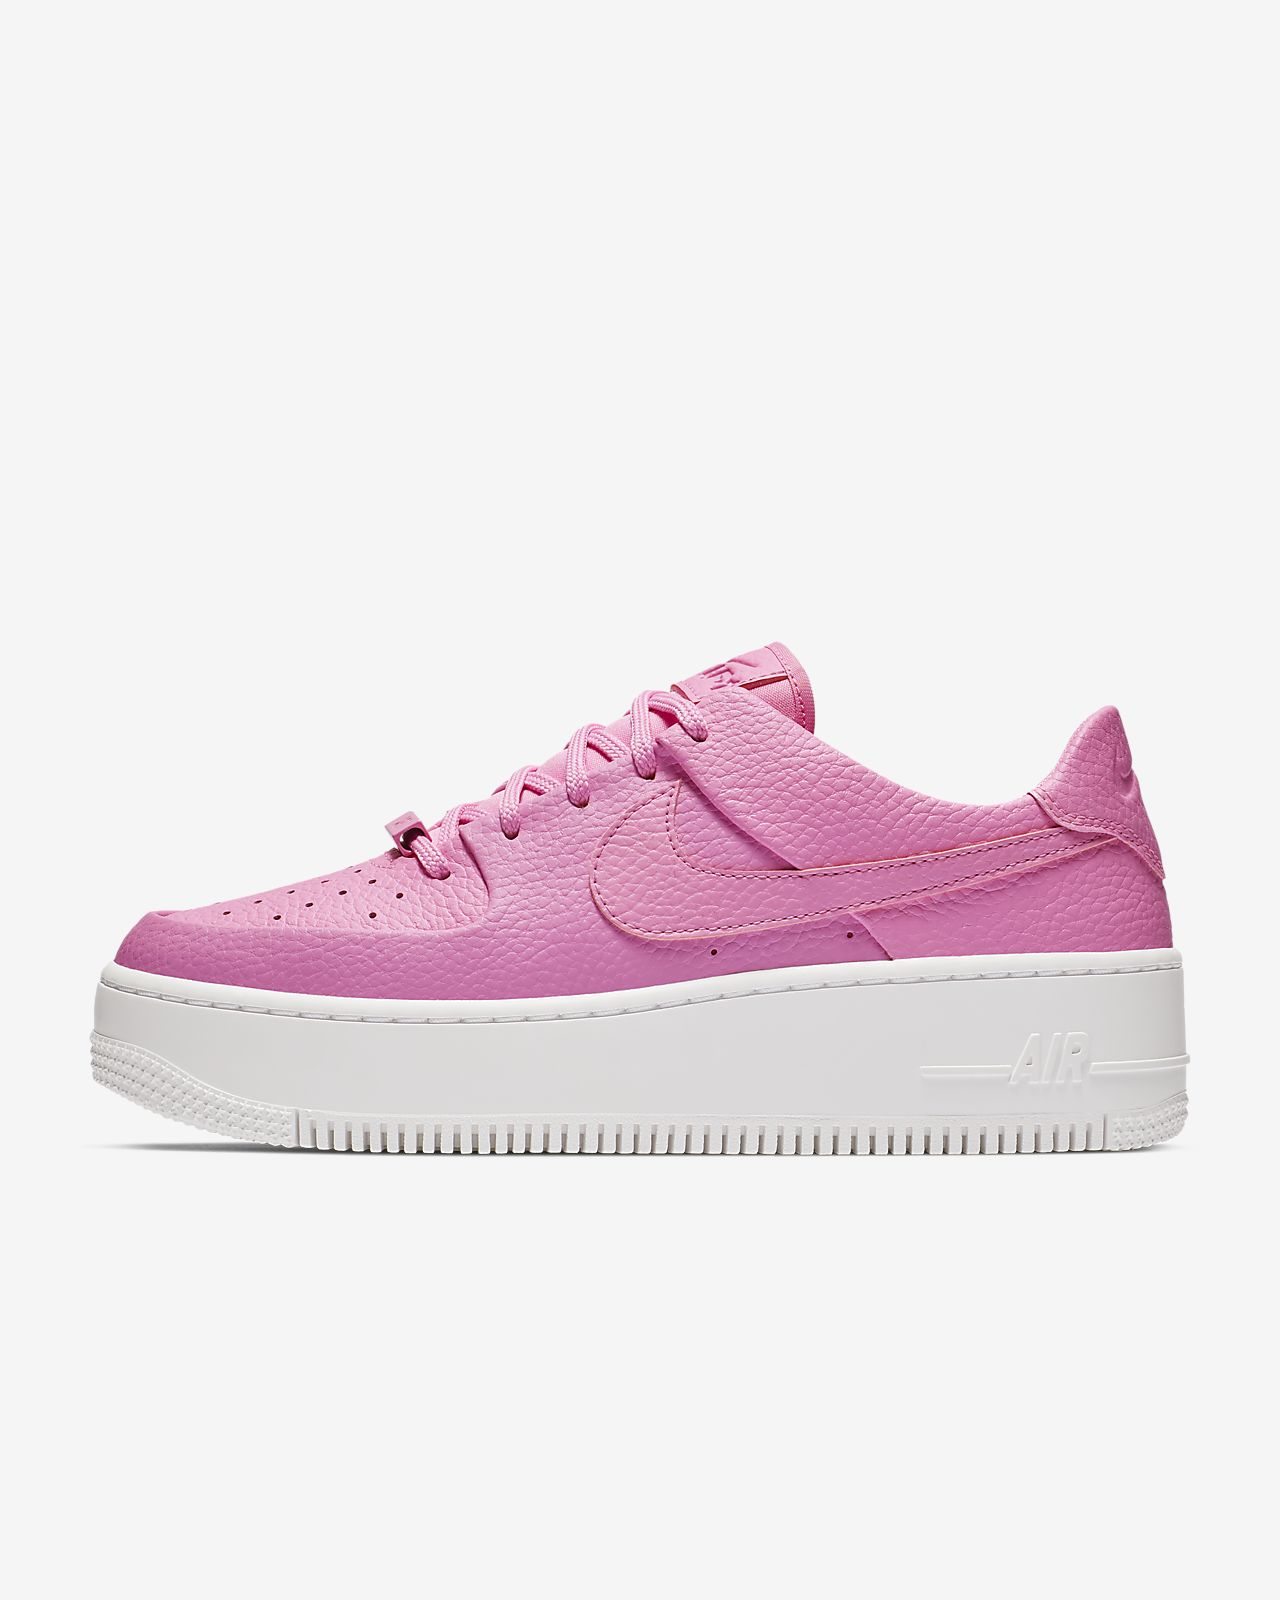 d67c59f33bf Nike Air Force 1 Sage Low Women s Shoe. Nike.com GB